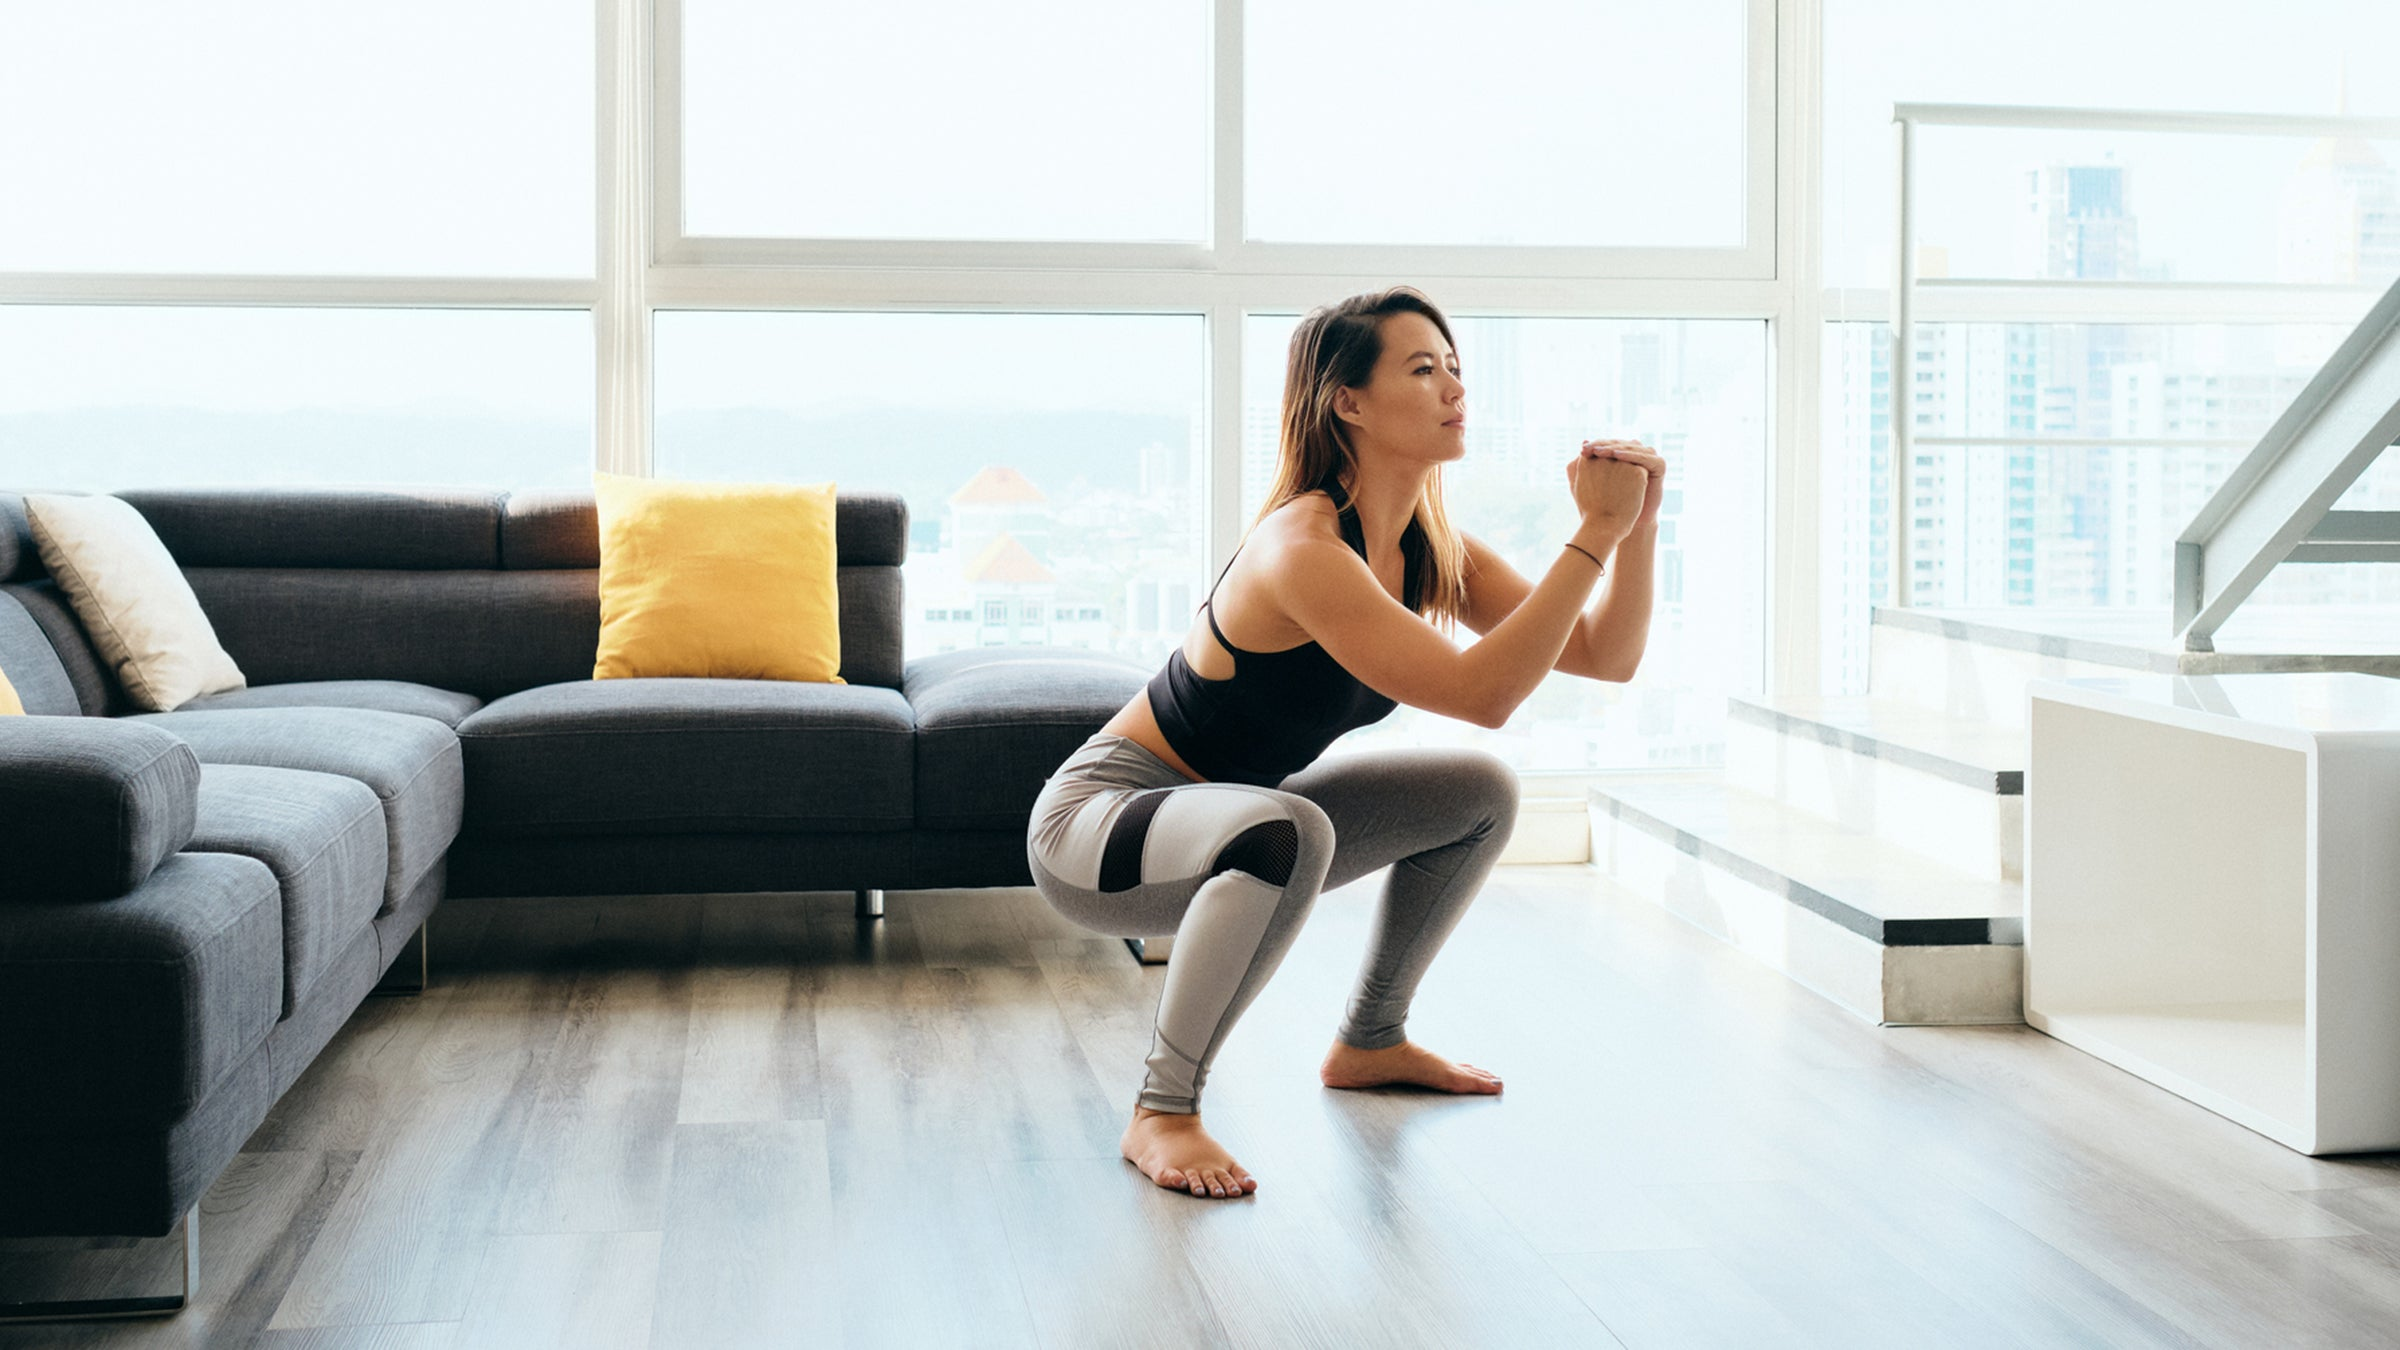 squat exercise at home